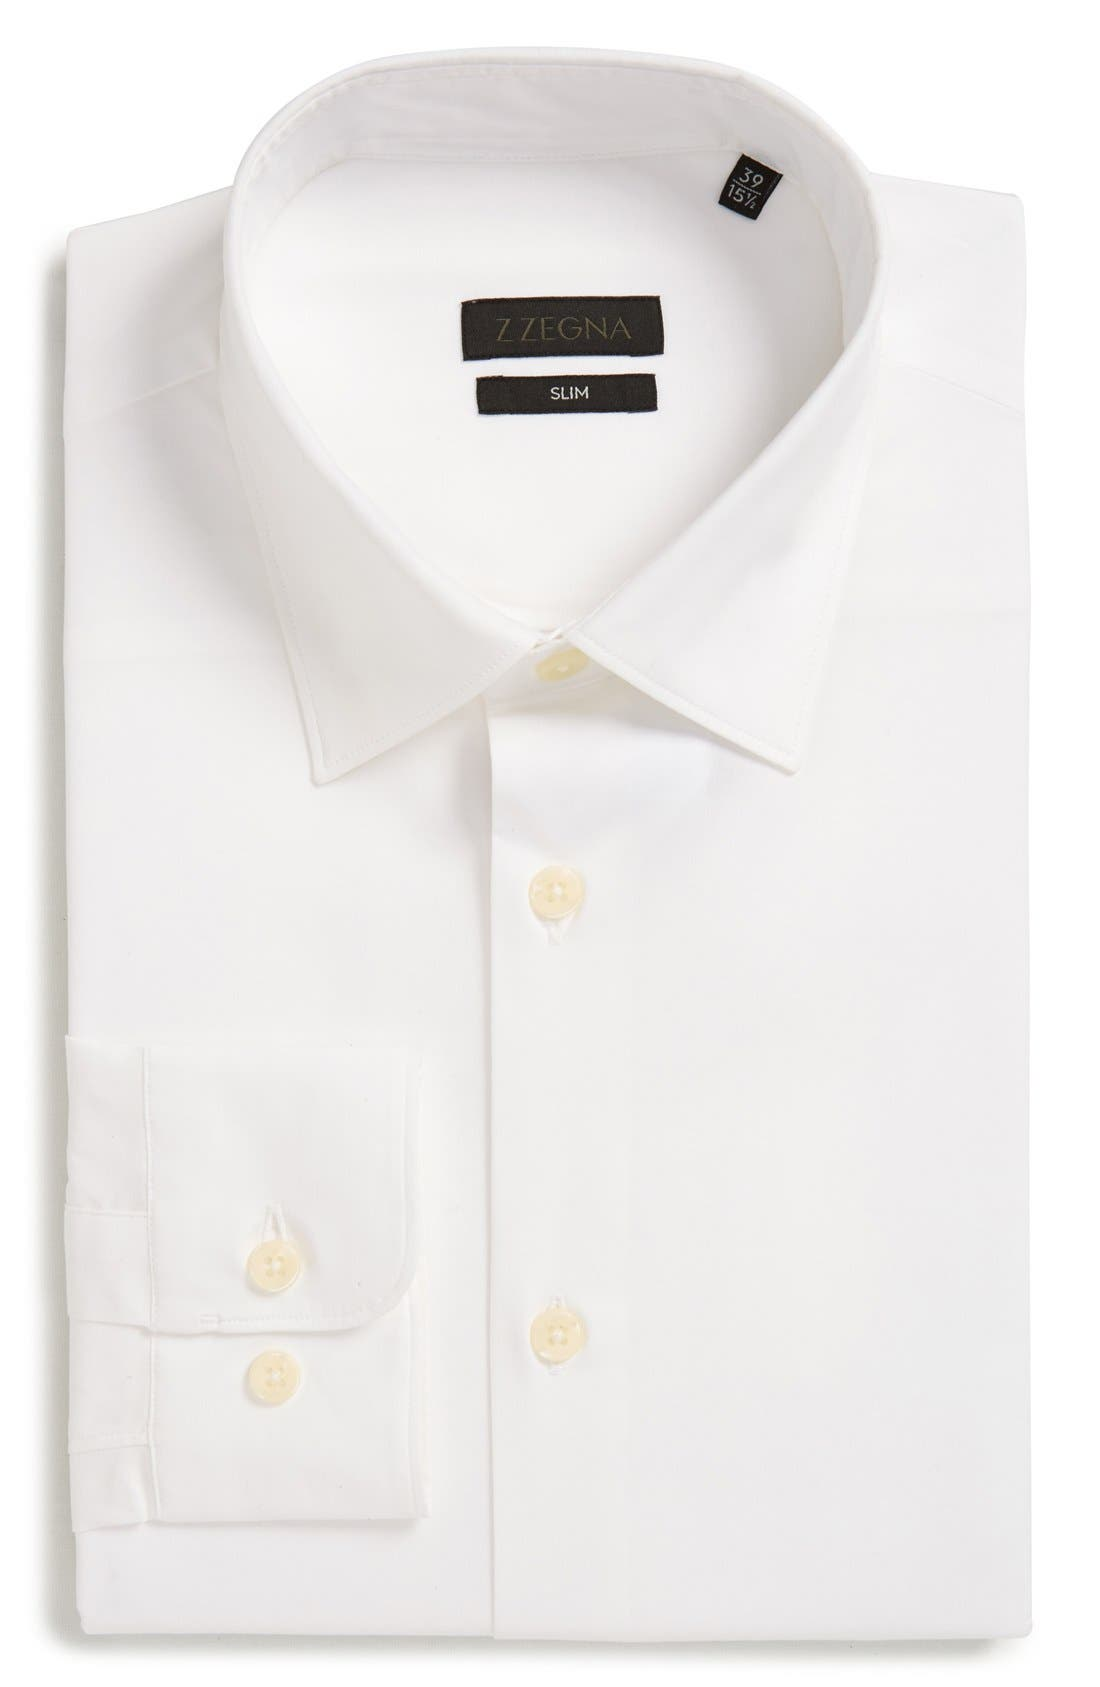 Alternate Image 1 Selected - Z Zegna Slim Fit Solid Stretch Dress Shirt